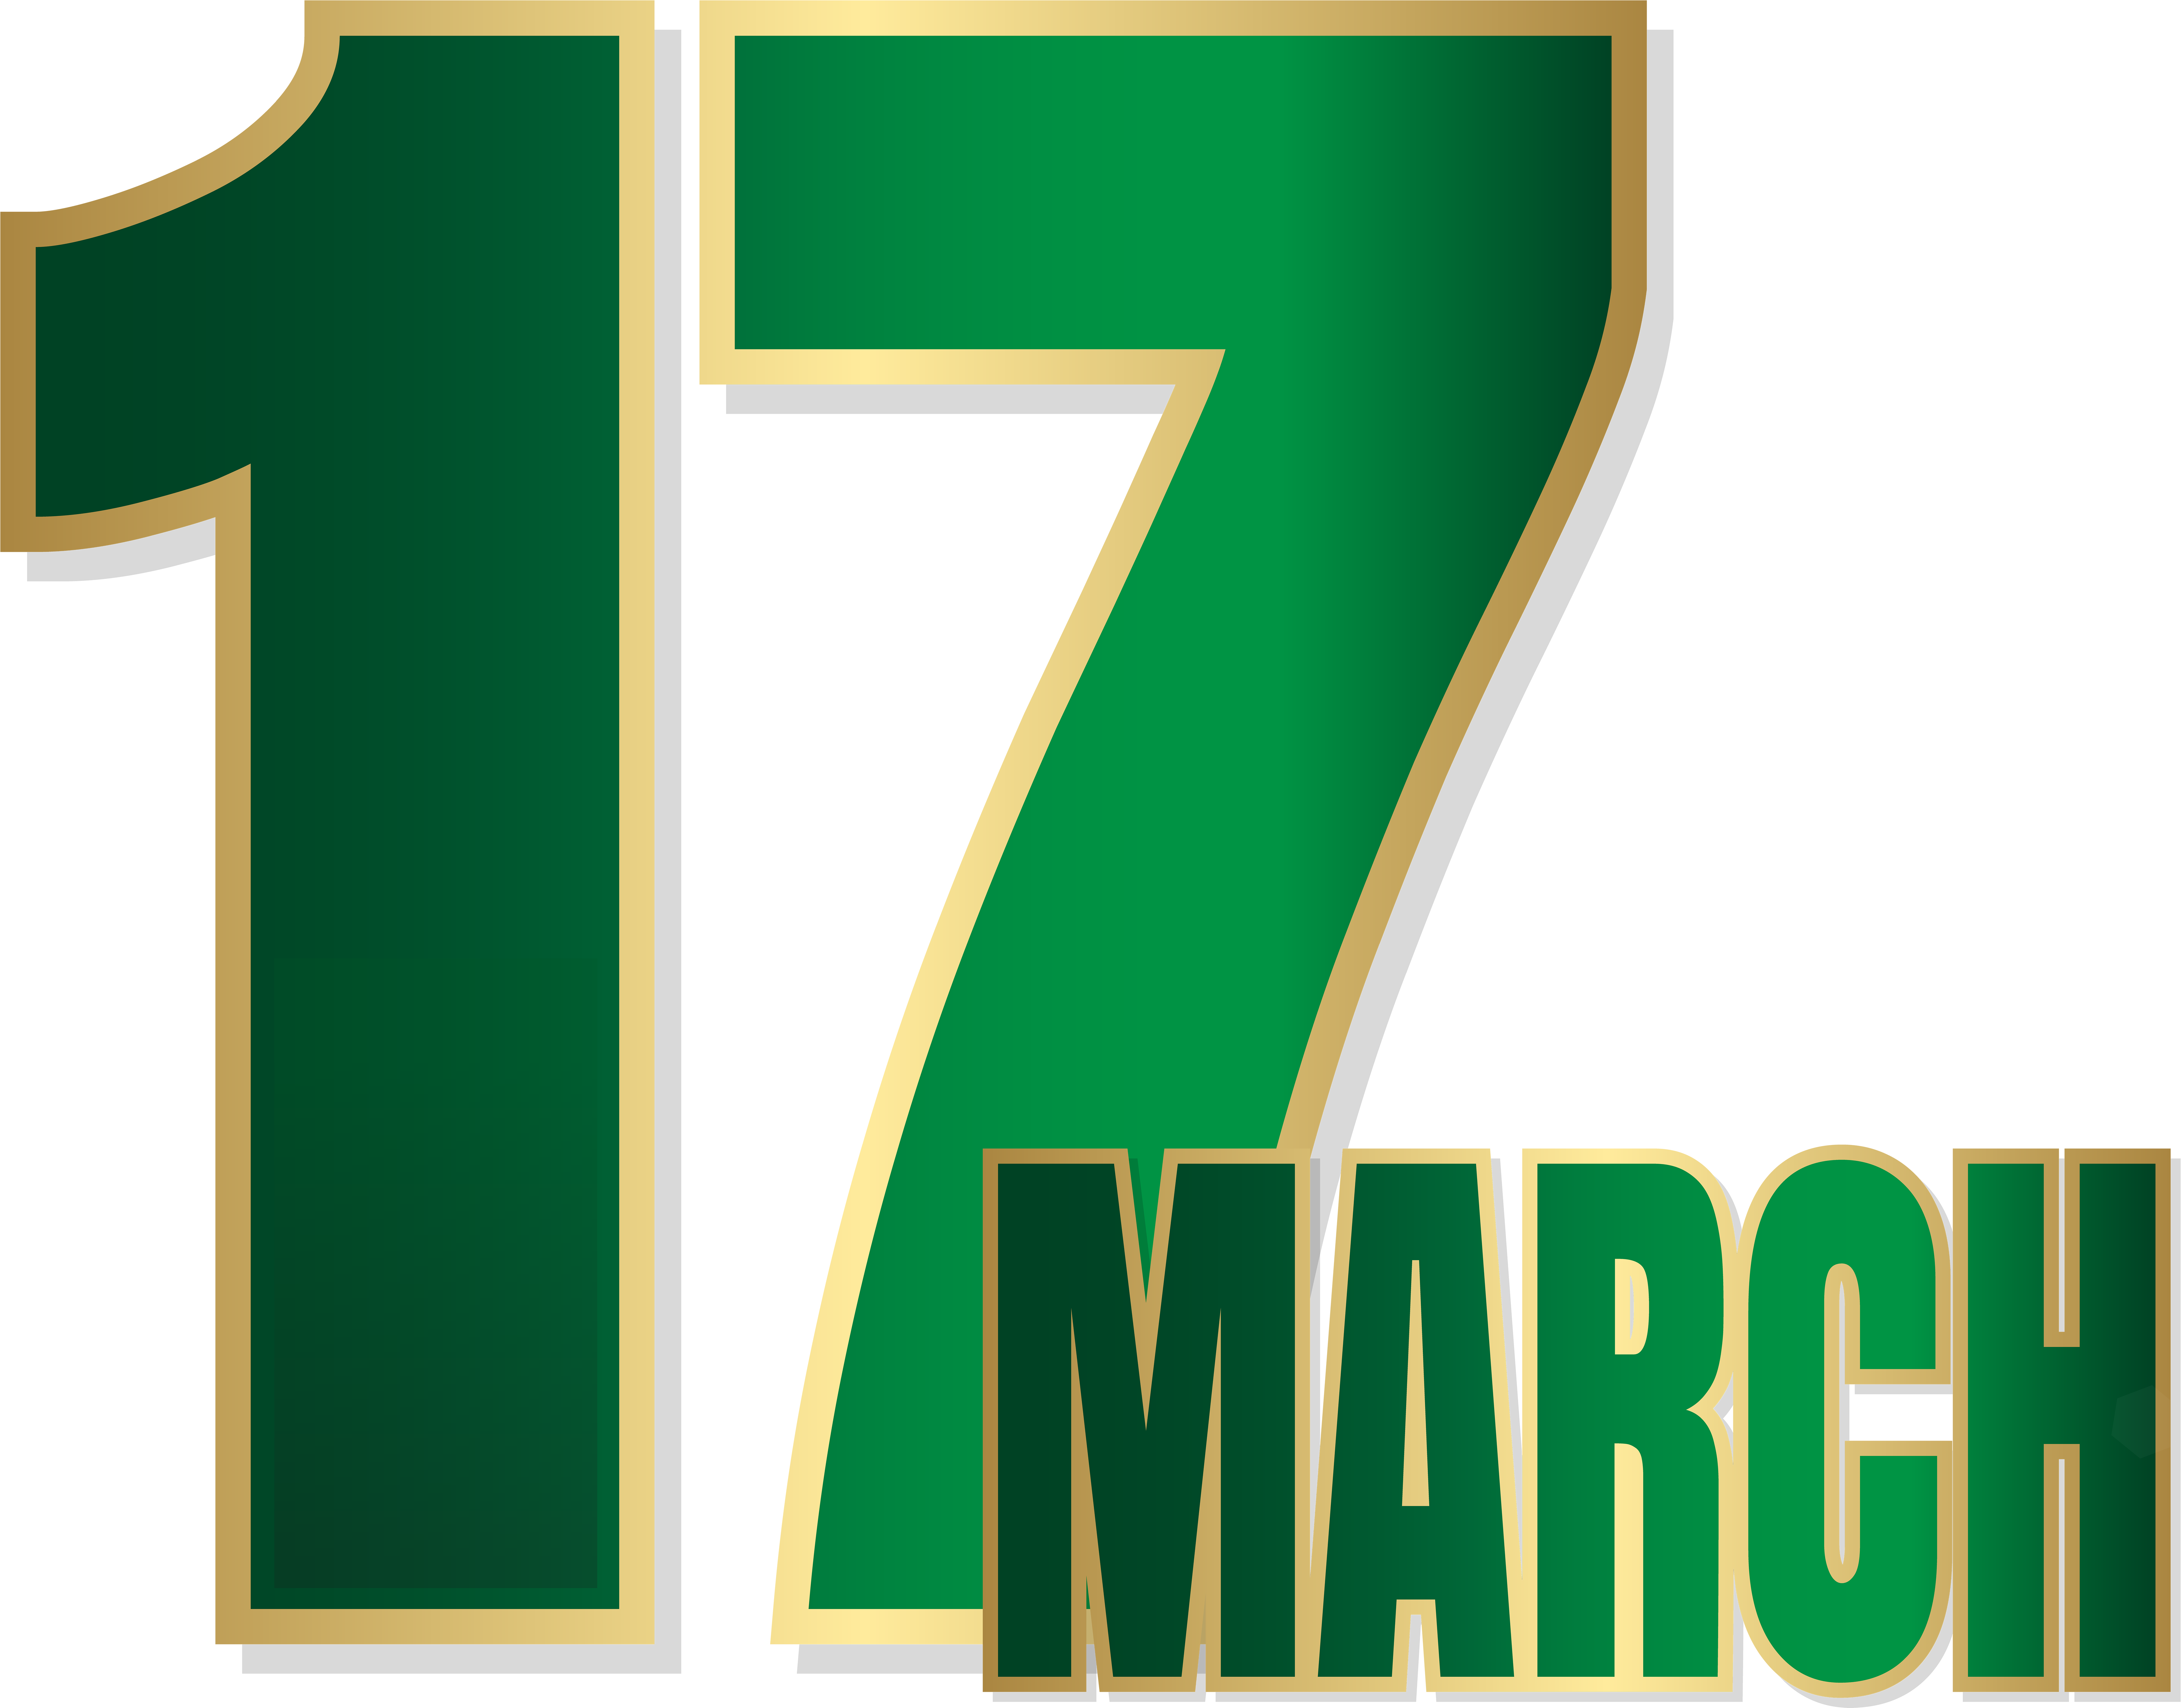 March clipart st pats. Patrick s day png